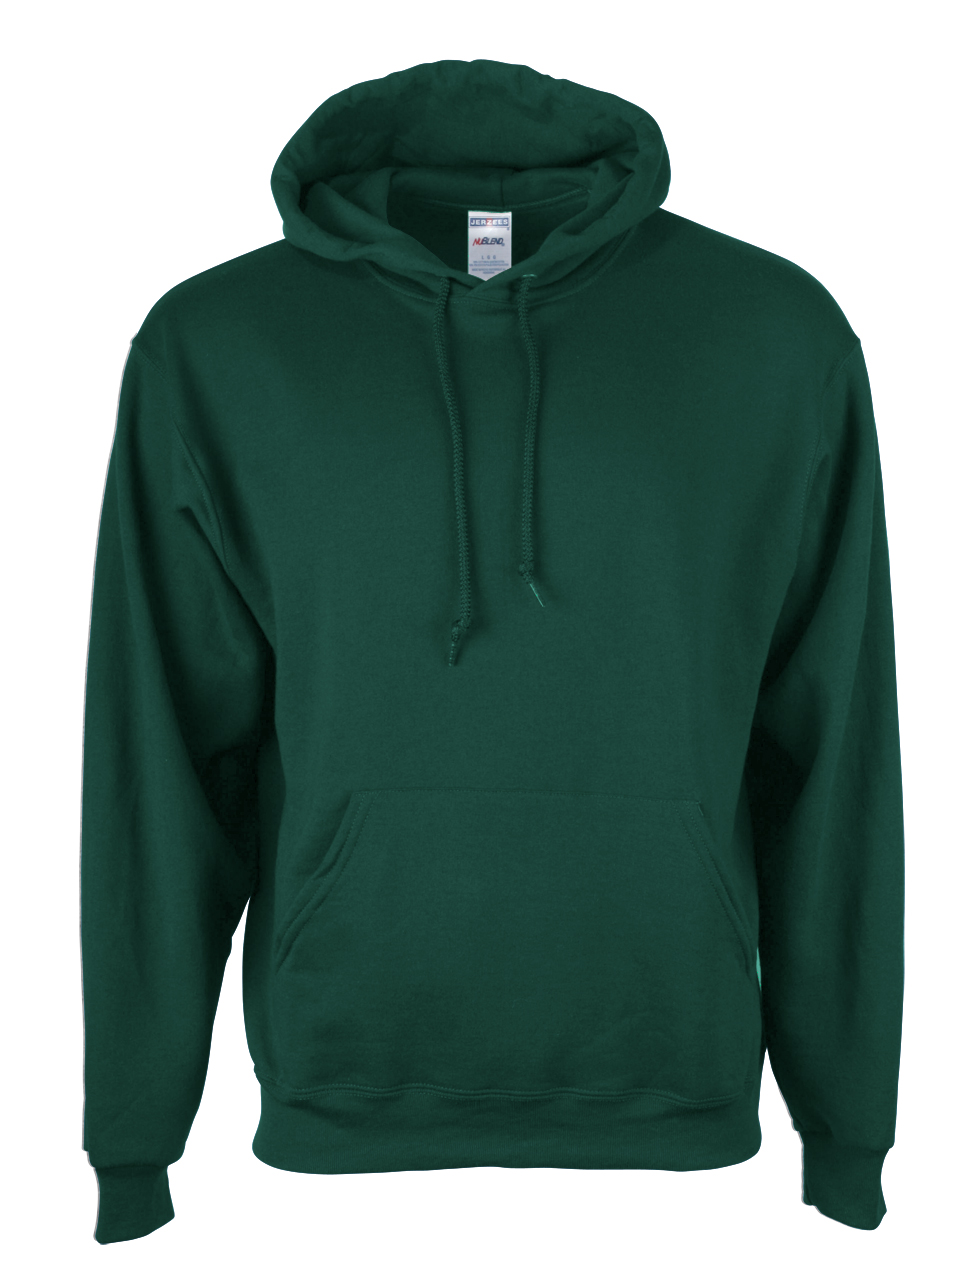 Picture of CLEARANCE Youth Pullover Hooded Sweatshirt